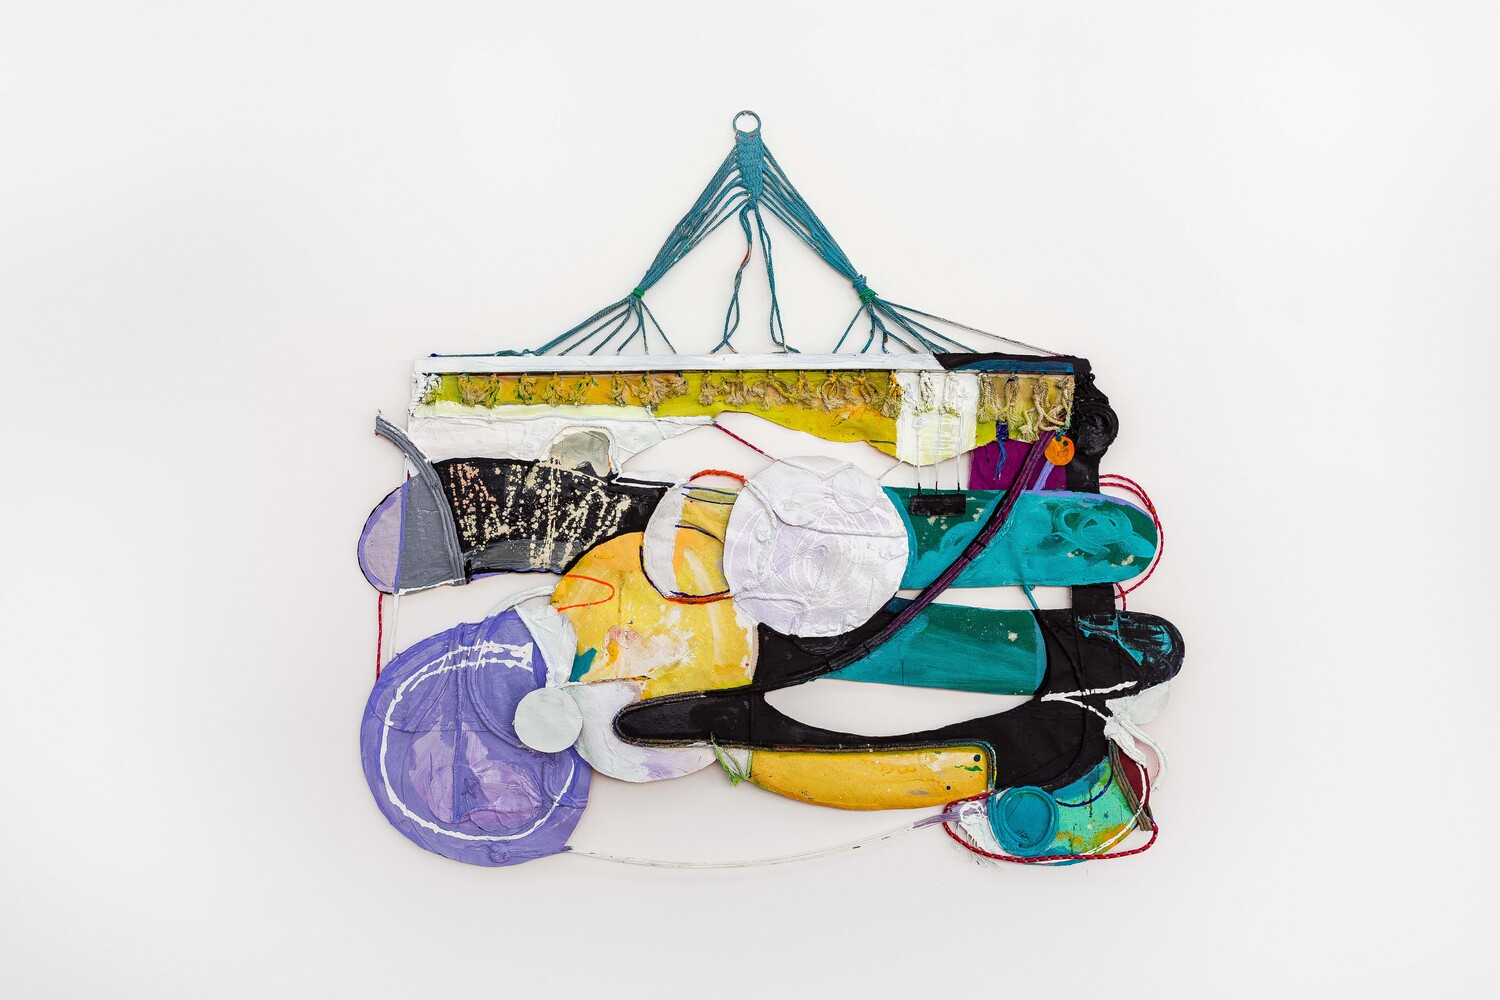 Dark Clay, 2021, Acrylic paint and dye on hammock, canvas and cotton rope, 171 x 188 x 6 cm, 67 3/8 x 74 1/8 x 2 3/8 in